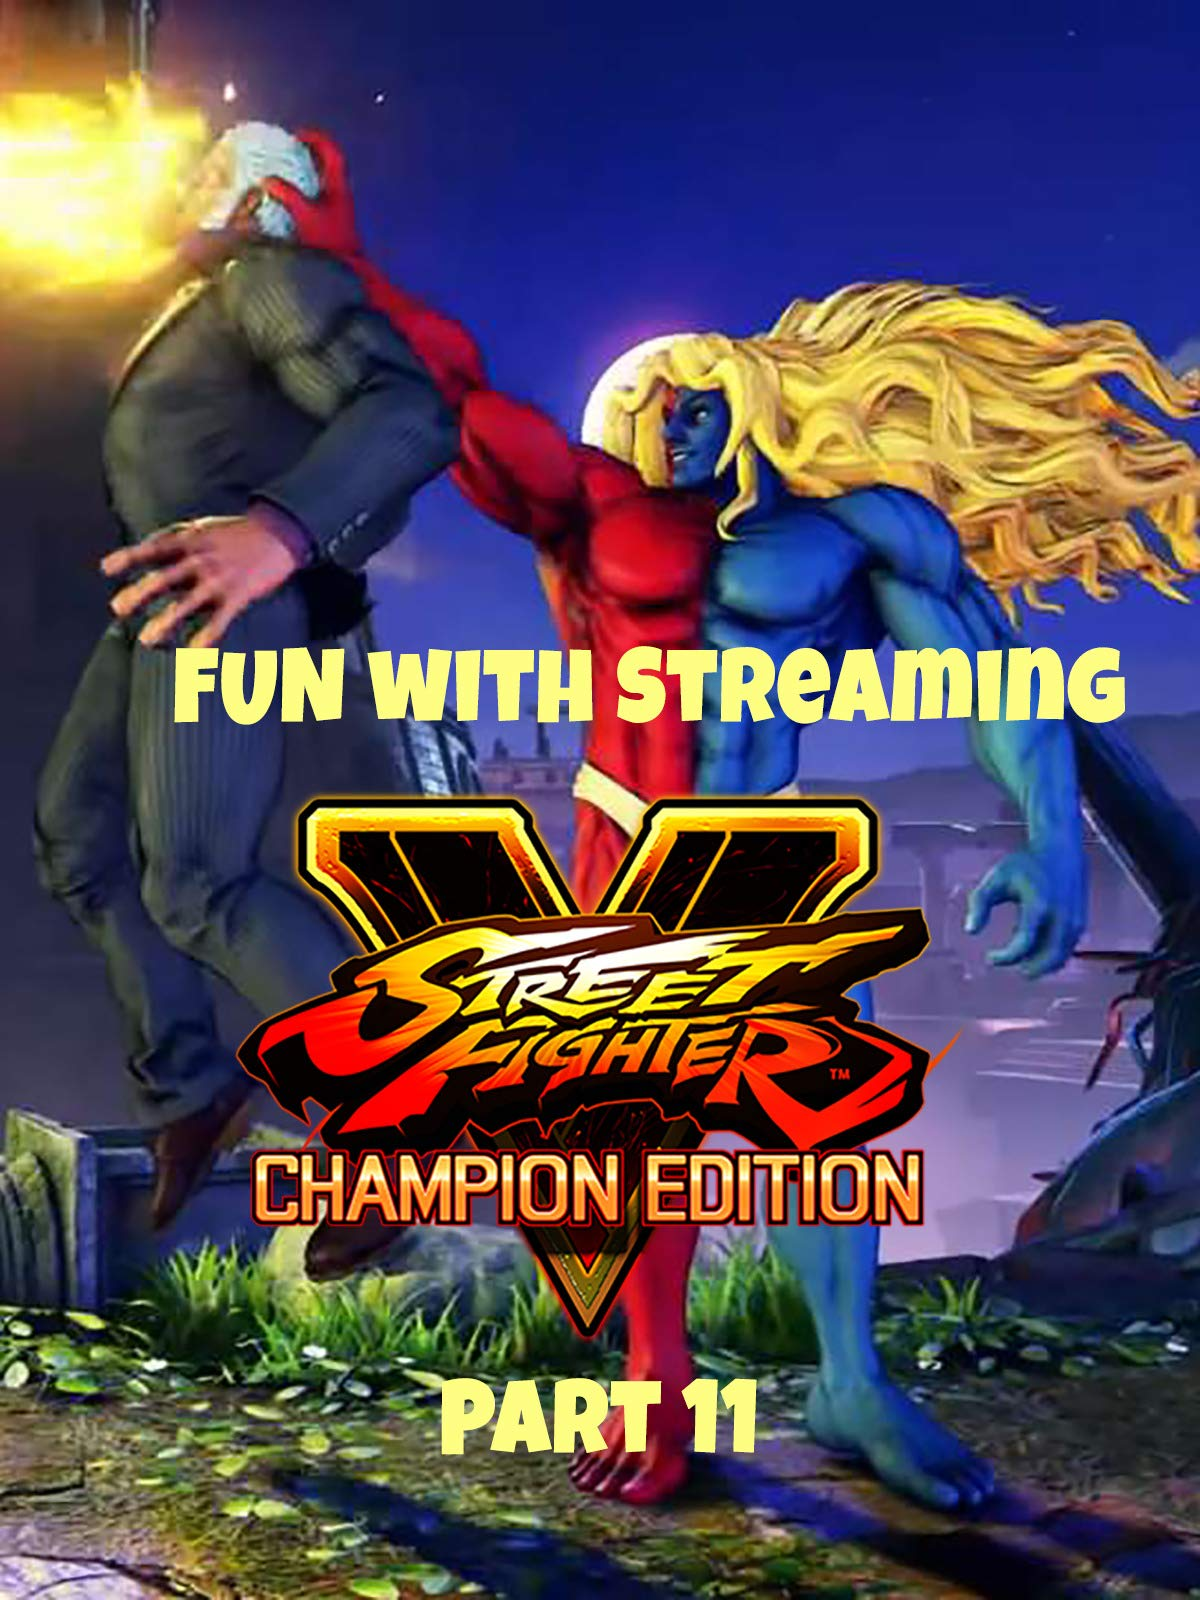 Clip: Fun with Streaming Street Fighter V Champion Edition Part 11 on Amazon Prime Video UK